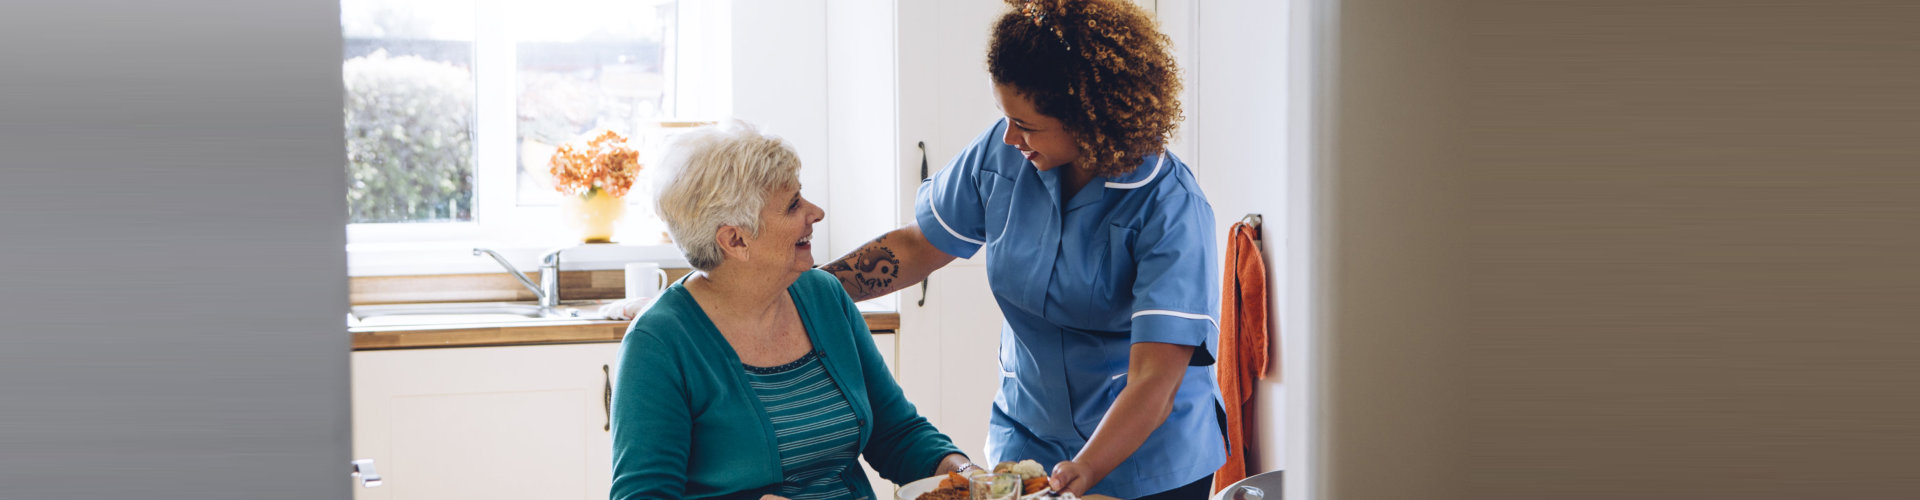 caregiver serving senior woman her food